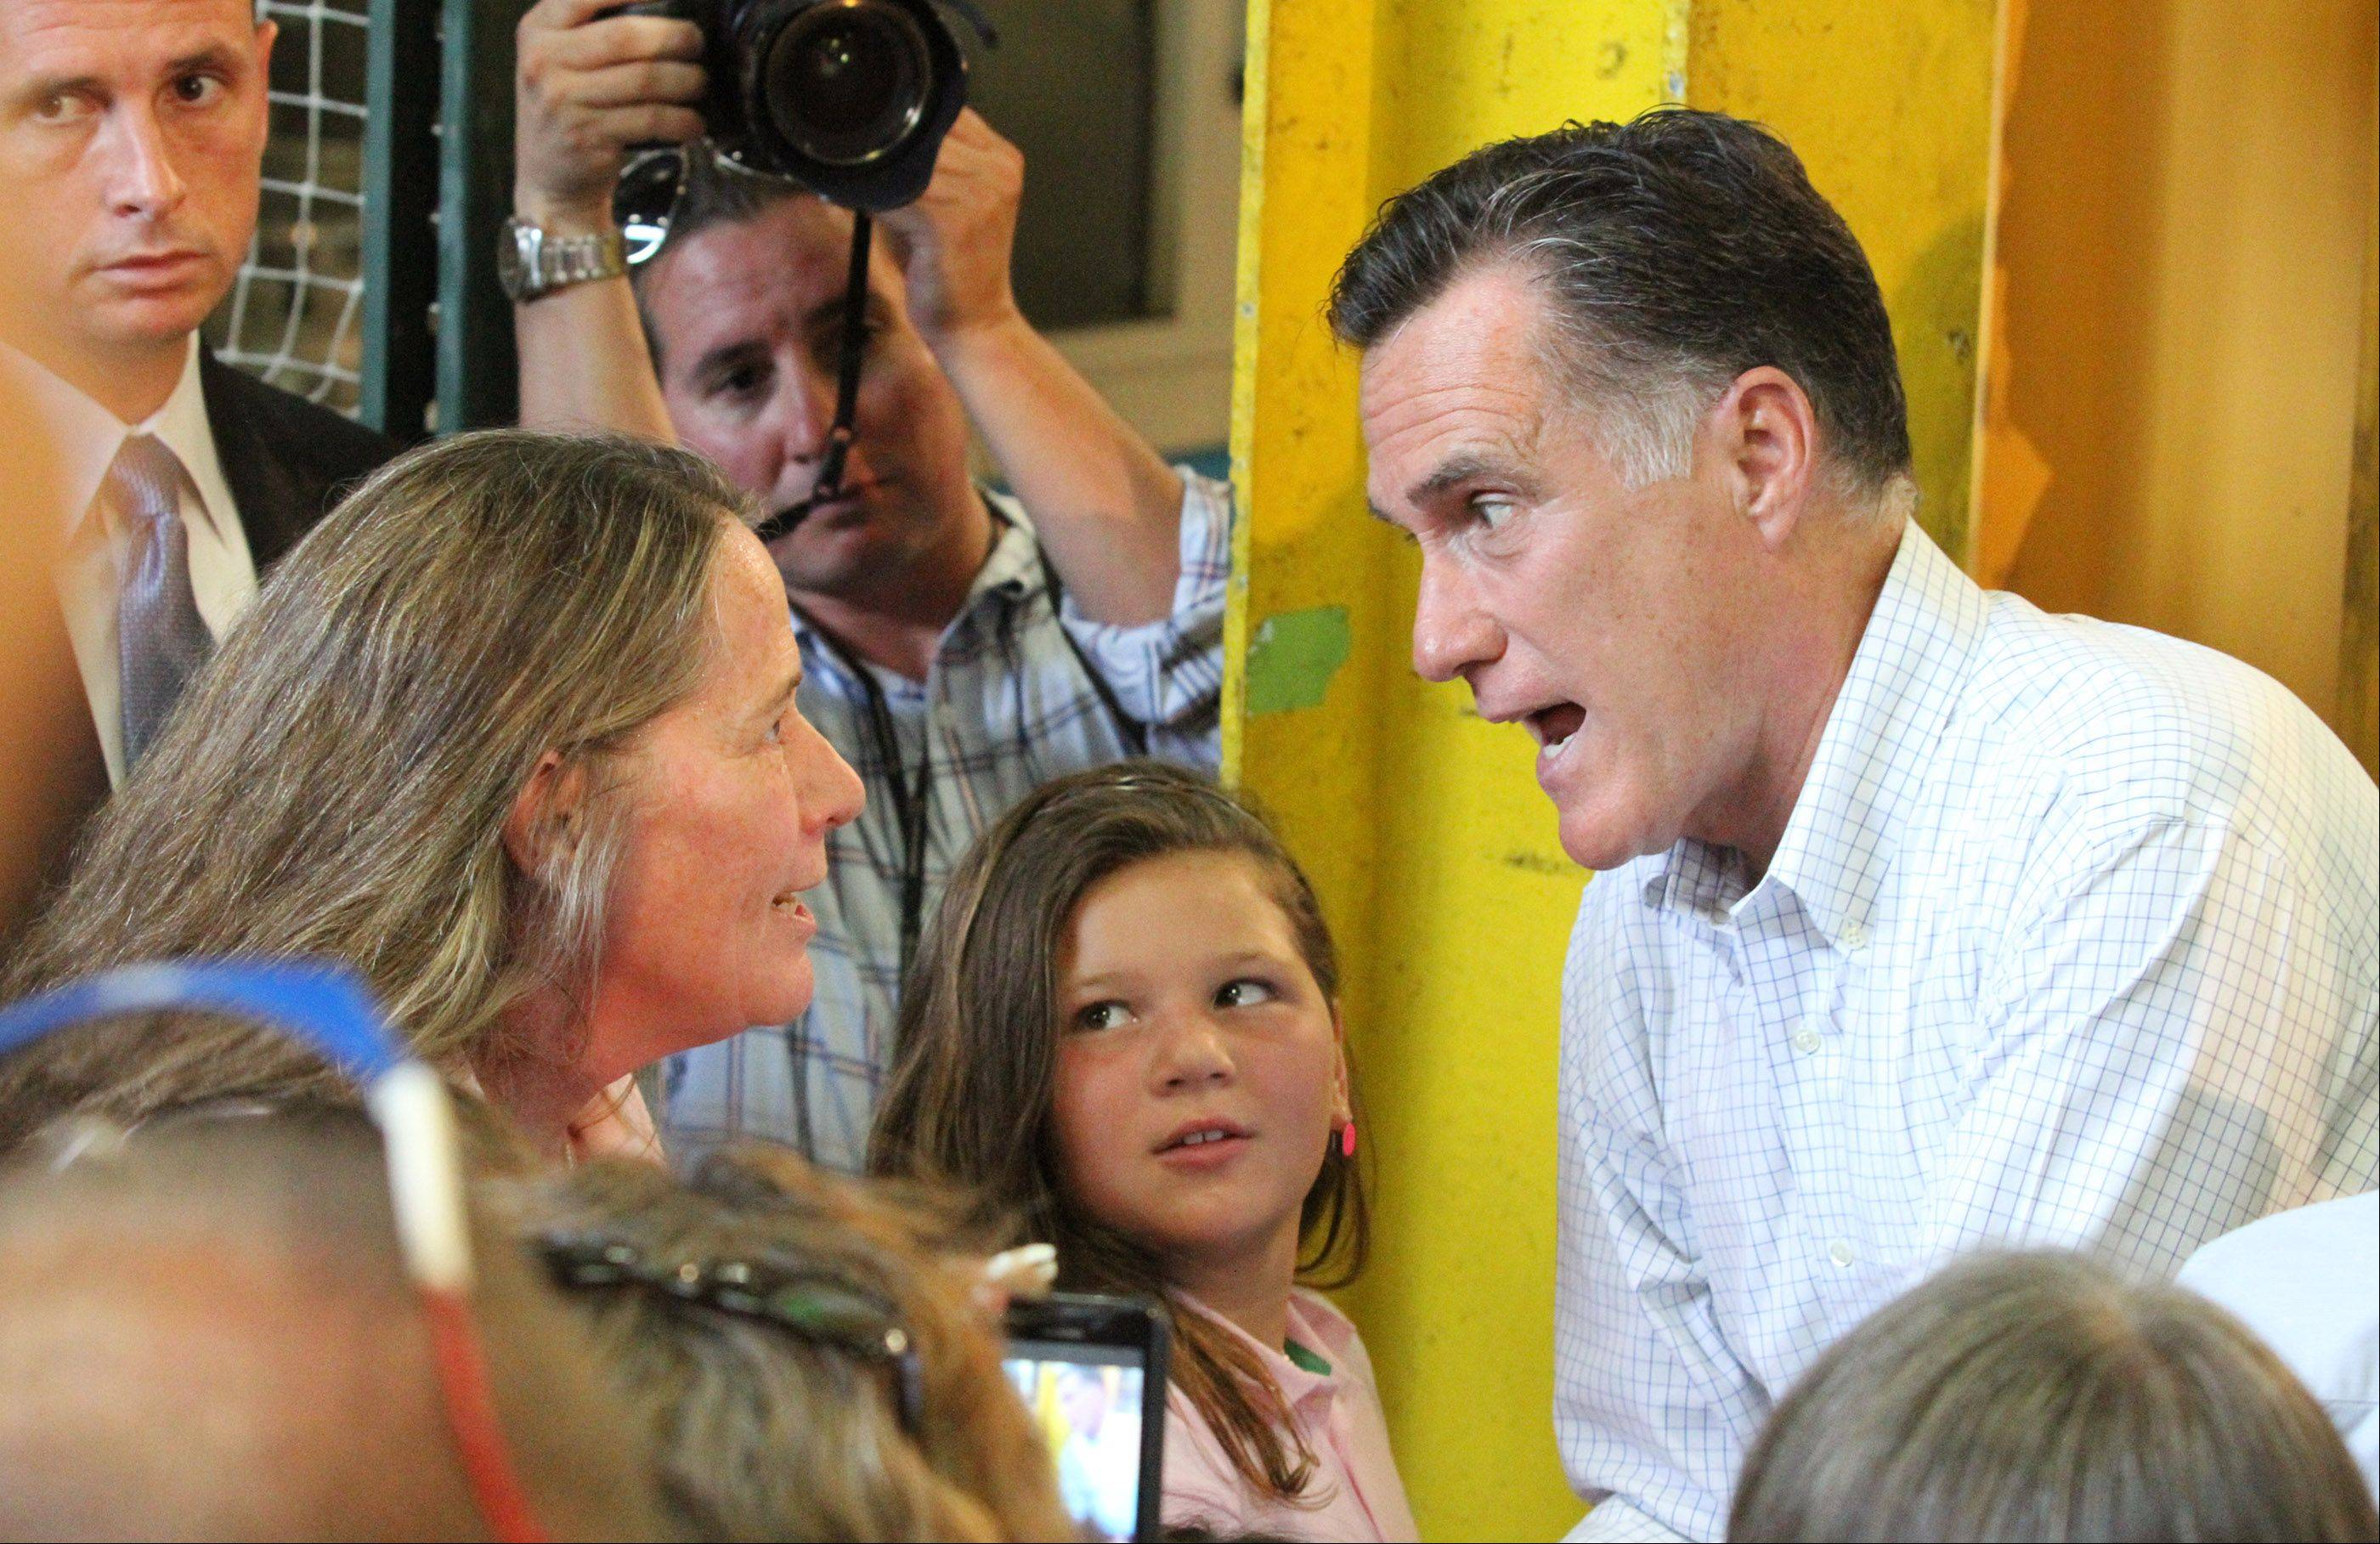 Sharon Meroni, director of Defend the Vote, of Barrington, speaks with GOP Presidential candidate Mitt Romney after a campaign speech at Acme Industries in Elk Grove Village on Tuesday, August 7.